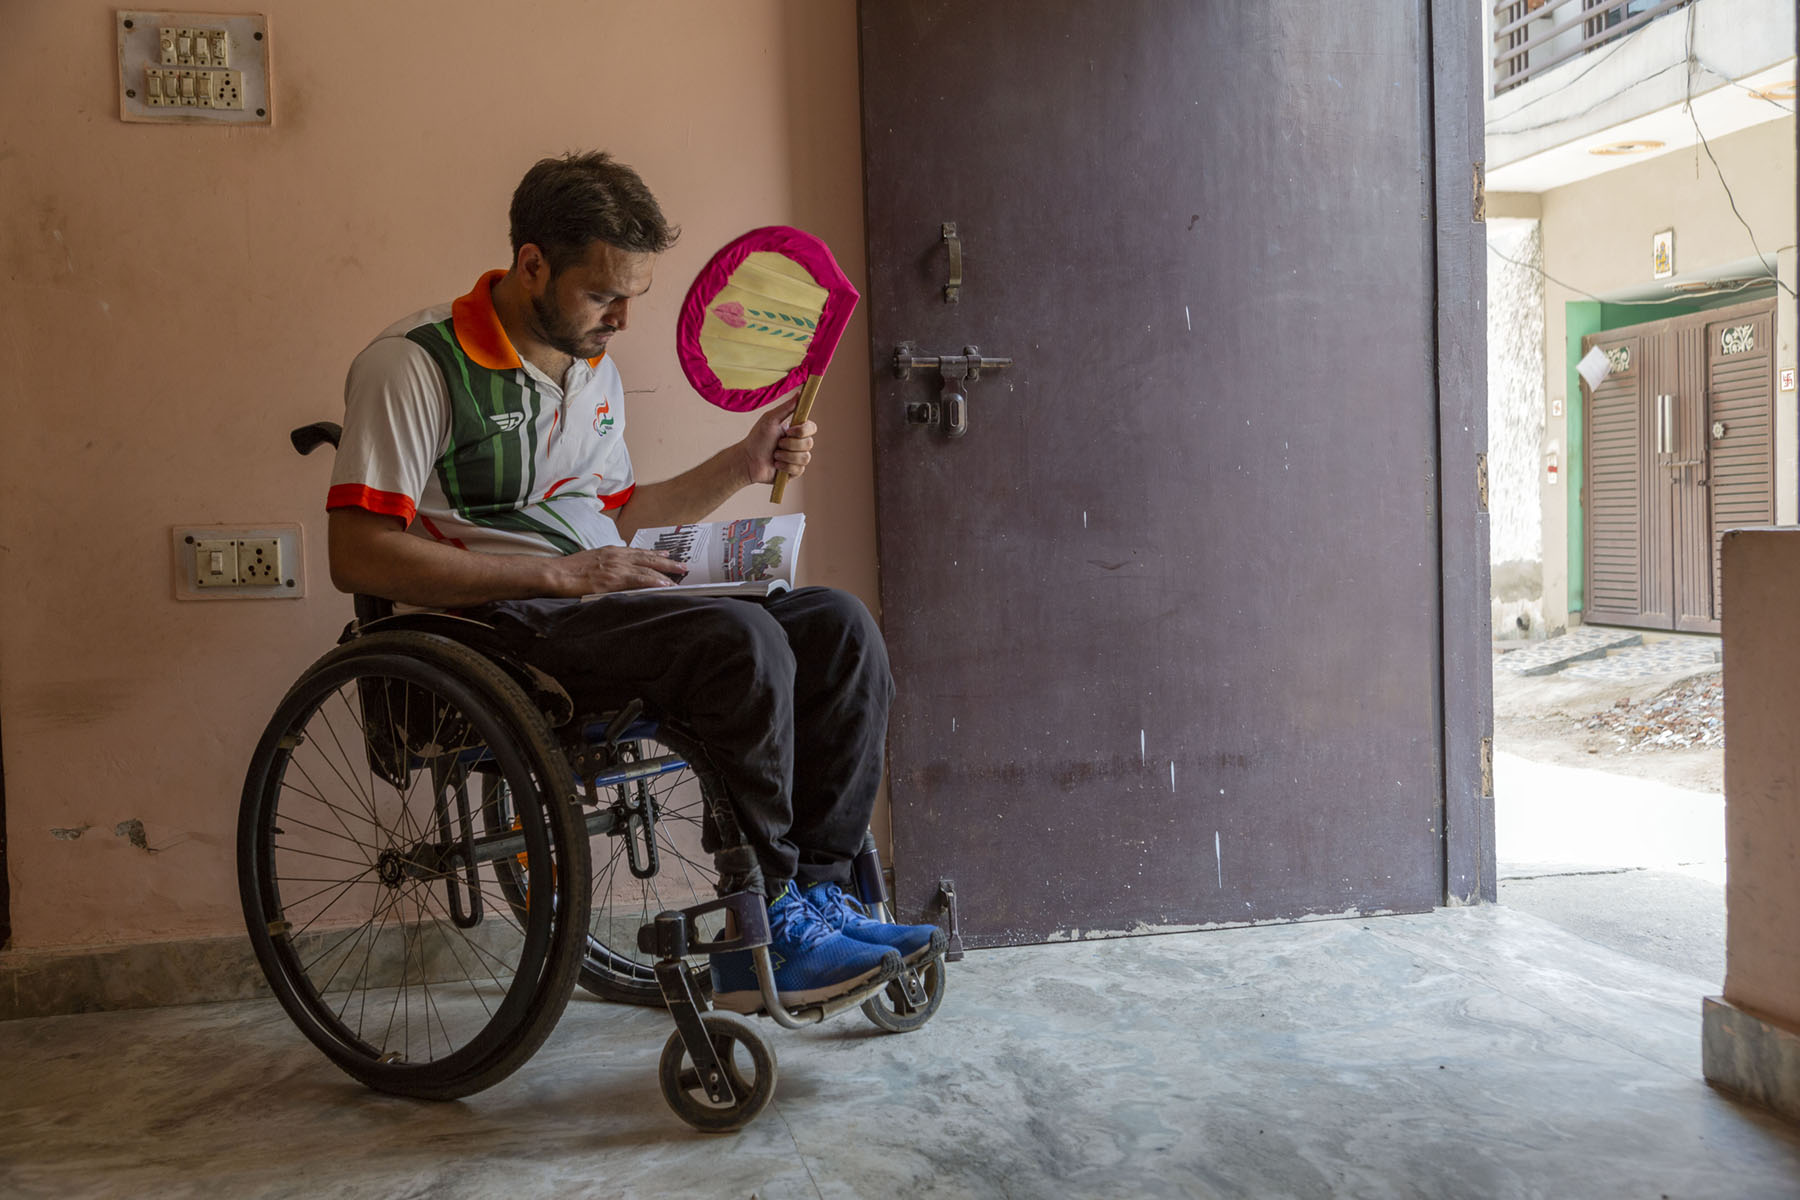 Shams sits in his wheelchair in the front room of his house. He has a close-cropped beard and moustache. Light falls on him from the open front door. In one hand he holds a book which he is reading and in the other, a palm-leaf hand fan with a wooden handle. He wears a white T-shirt with an orange collar, dark brown trousers and blue sneakers.